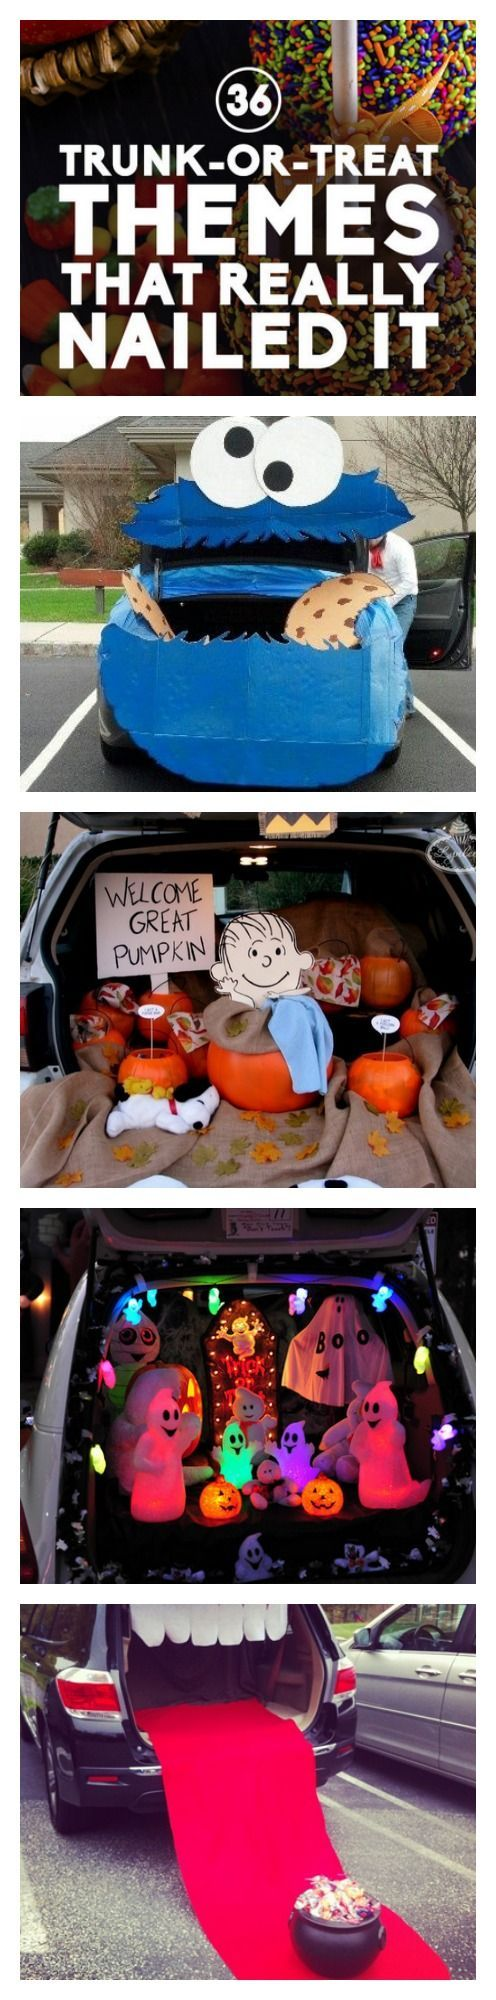 36 trunk or treat themes that really nailed it halloween decorating